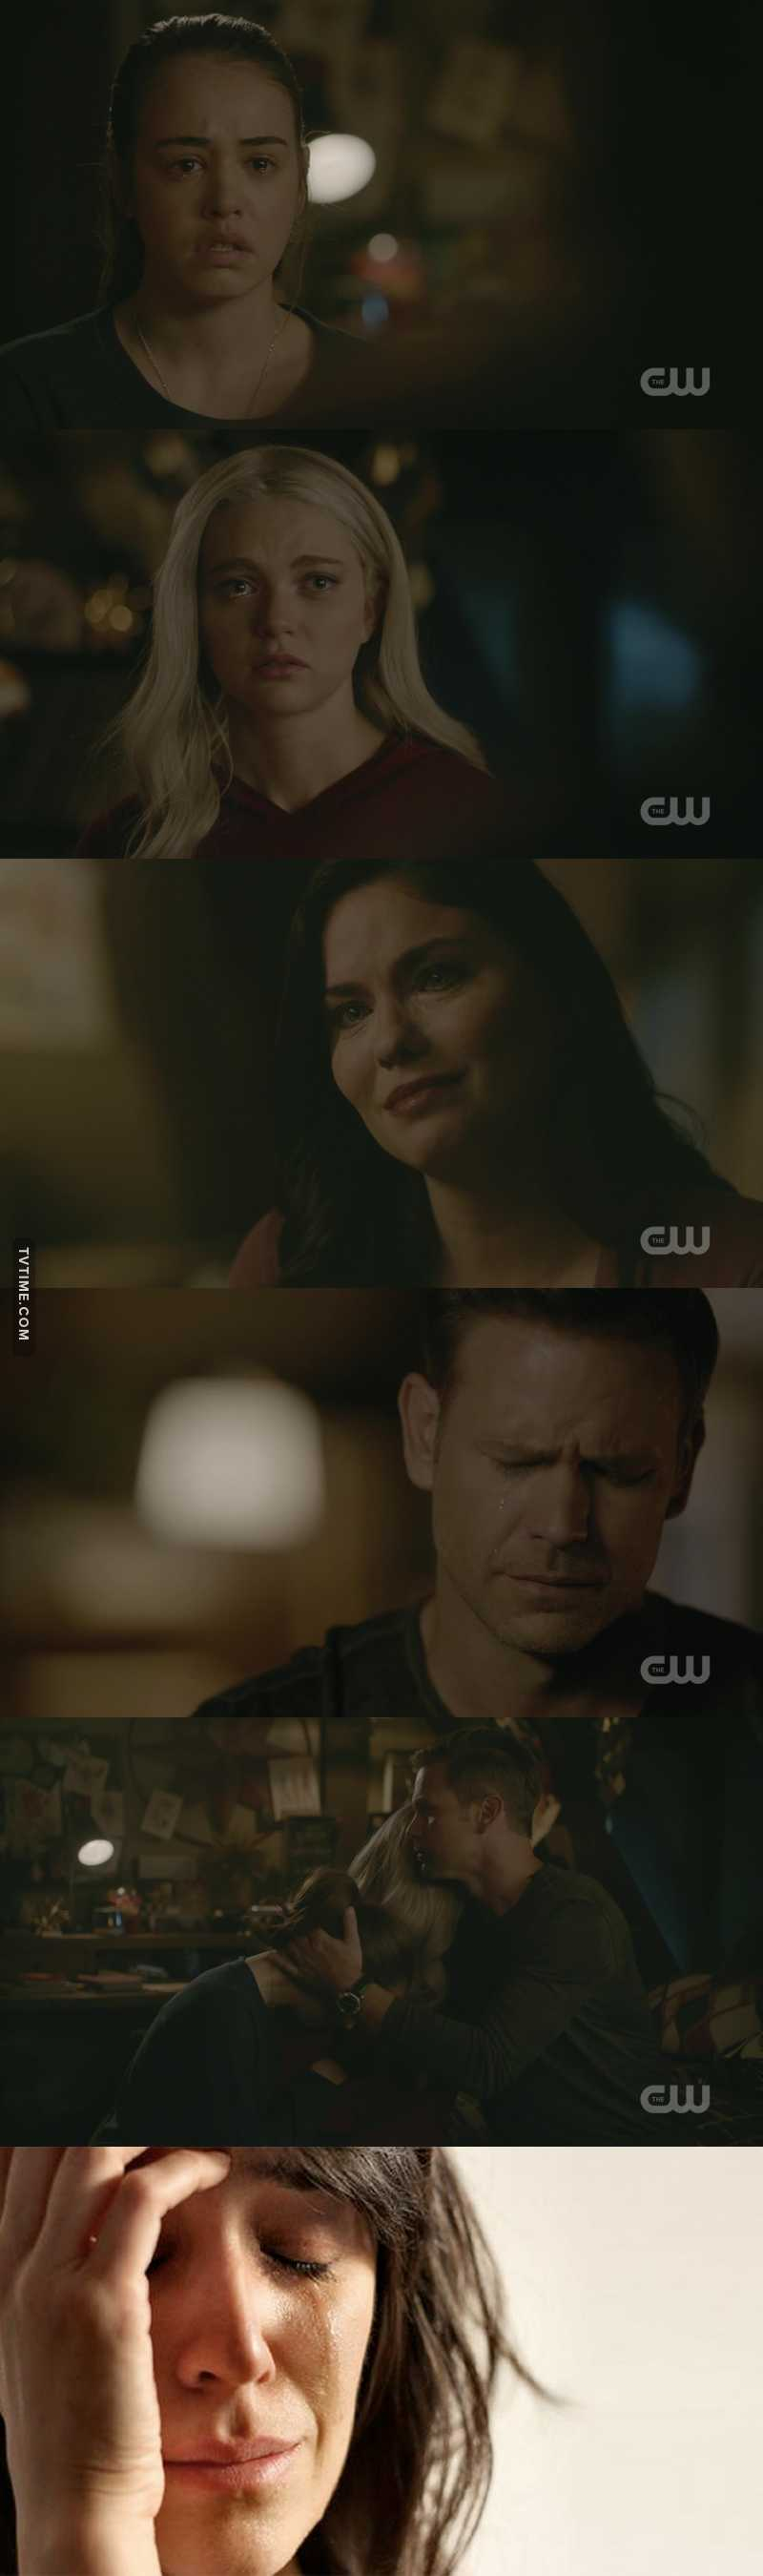 oh my god this scene was so sad 😭 i don't even have words 😩 it broke my little heart 💔